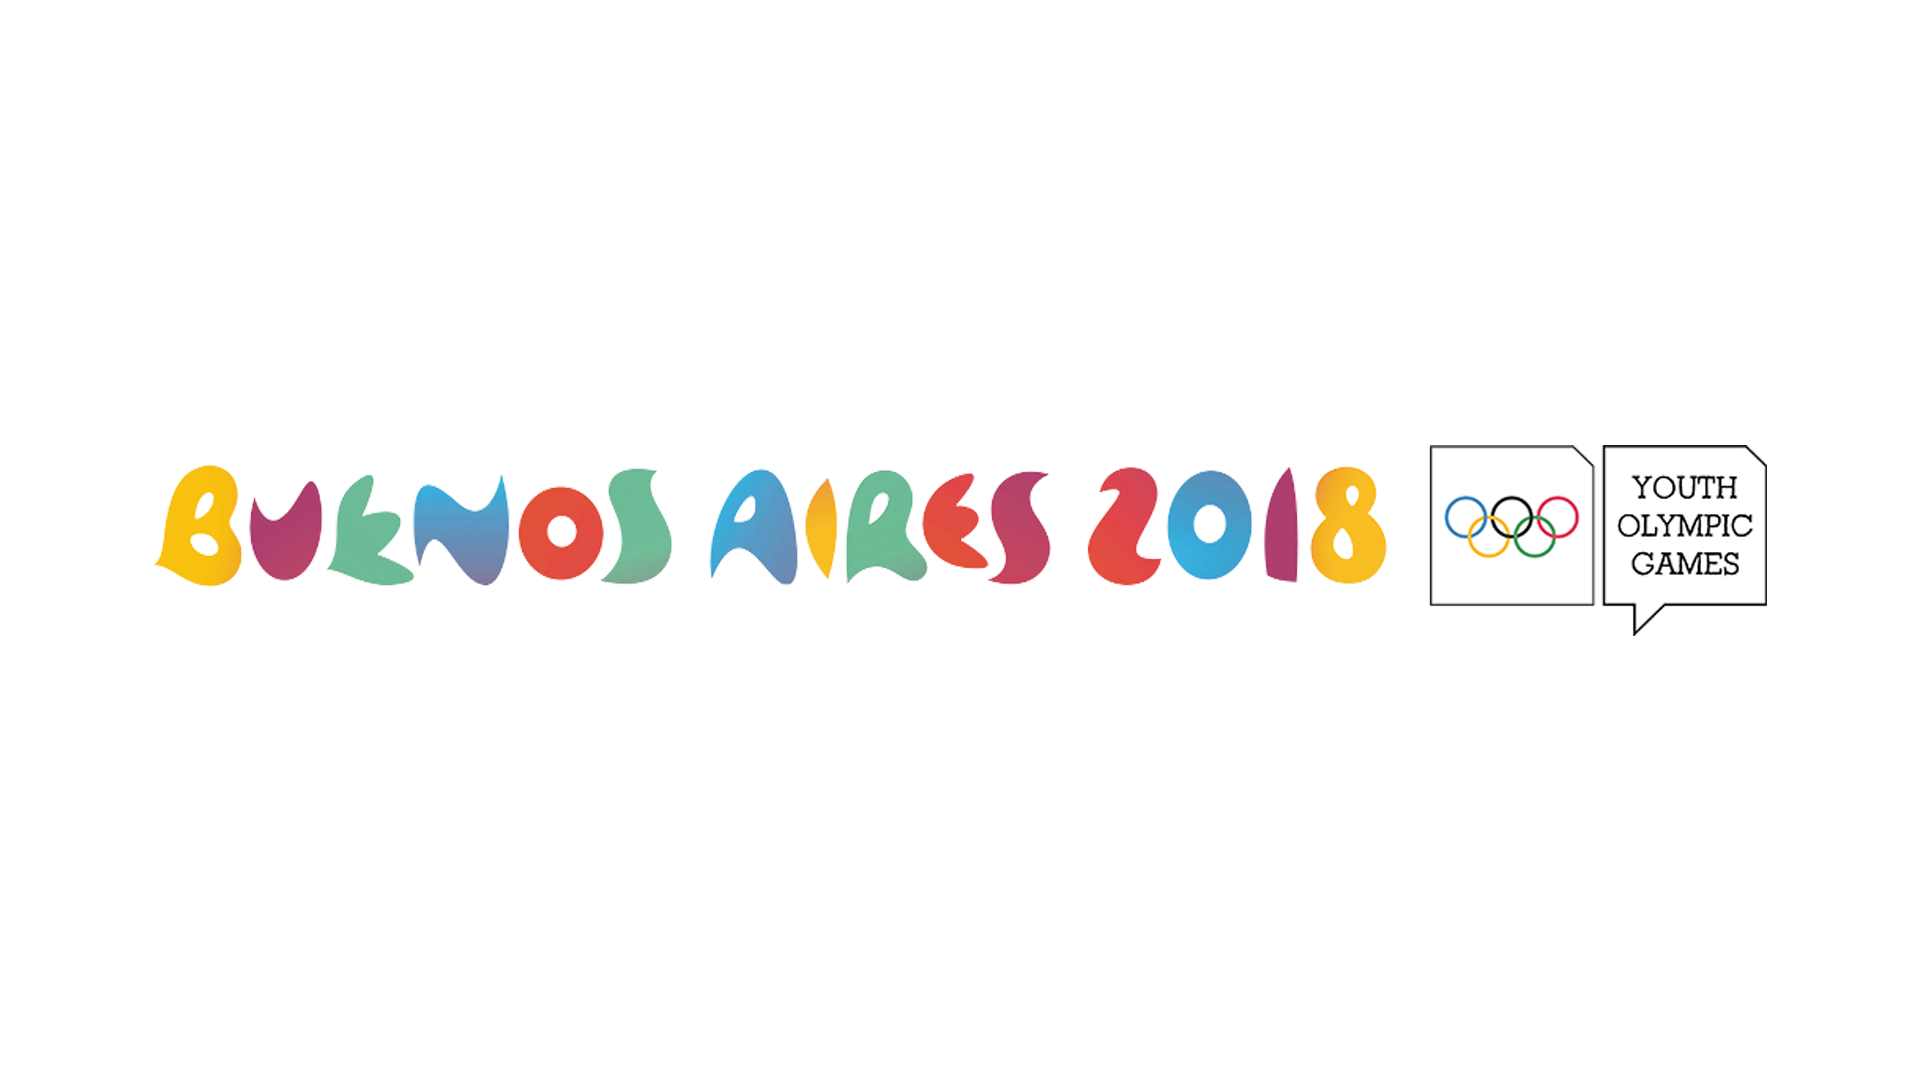 Rugby sevens teams confirmed for Summer Youth Olympic Games Buenos Aires 2018